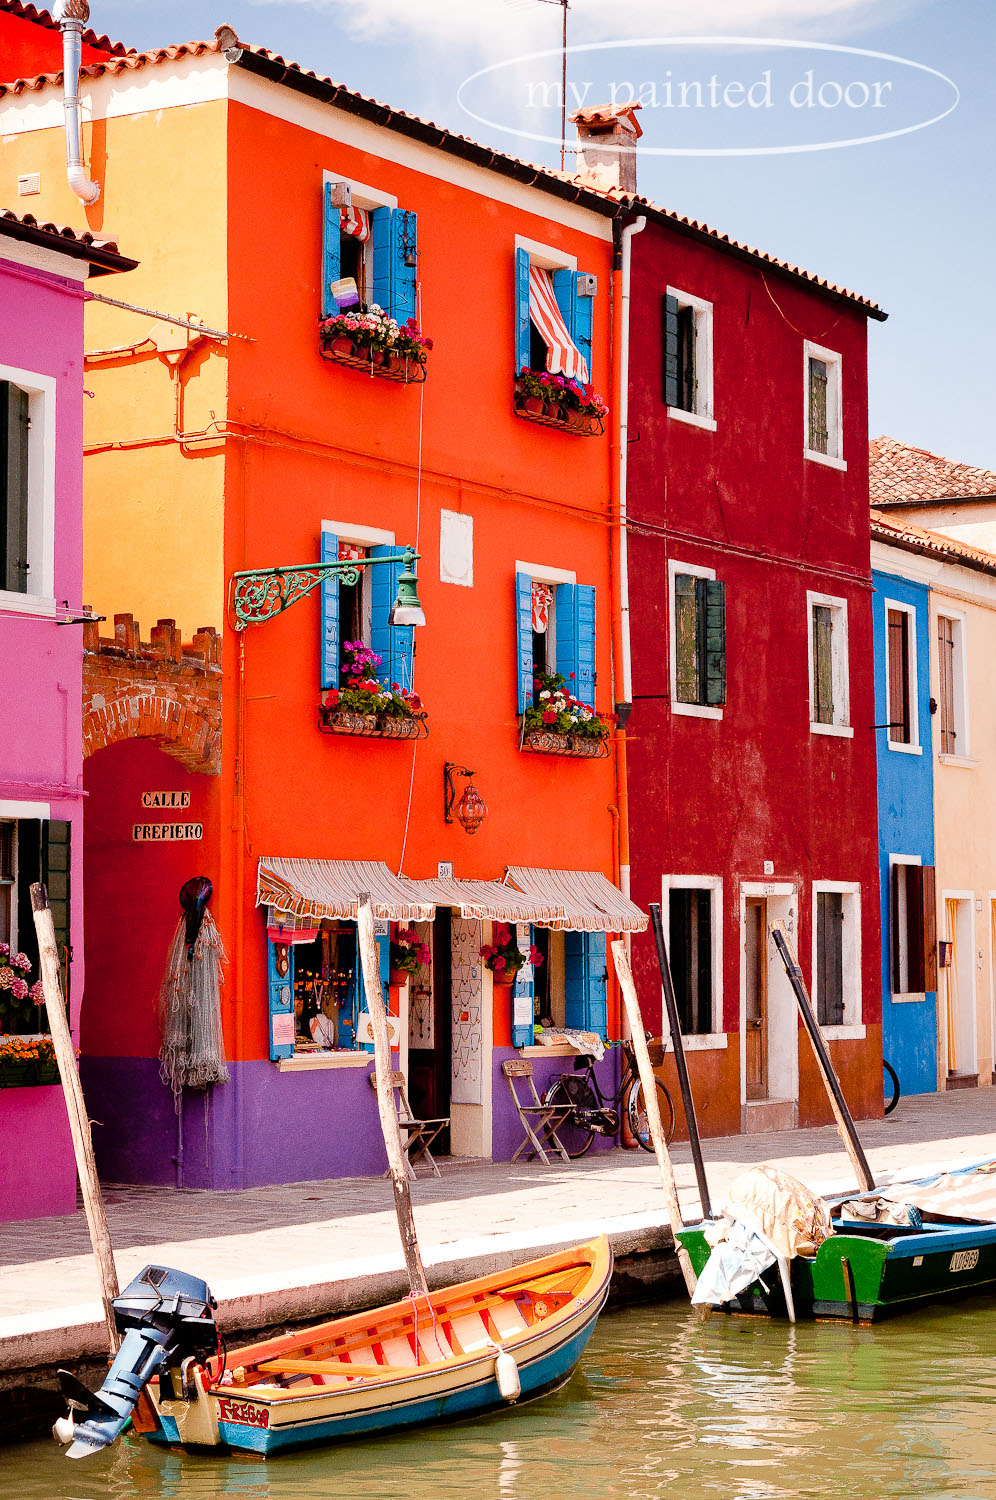 Colourful houses in Burano, Italy.